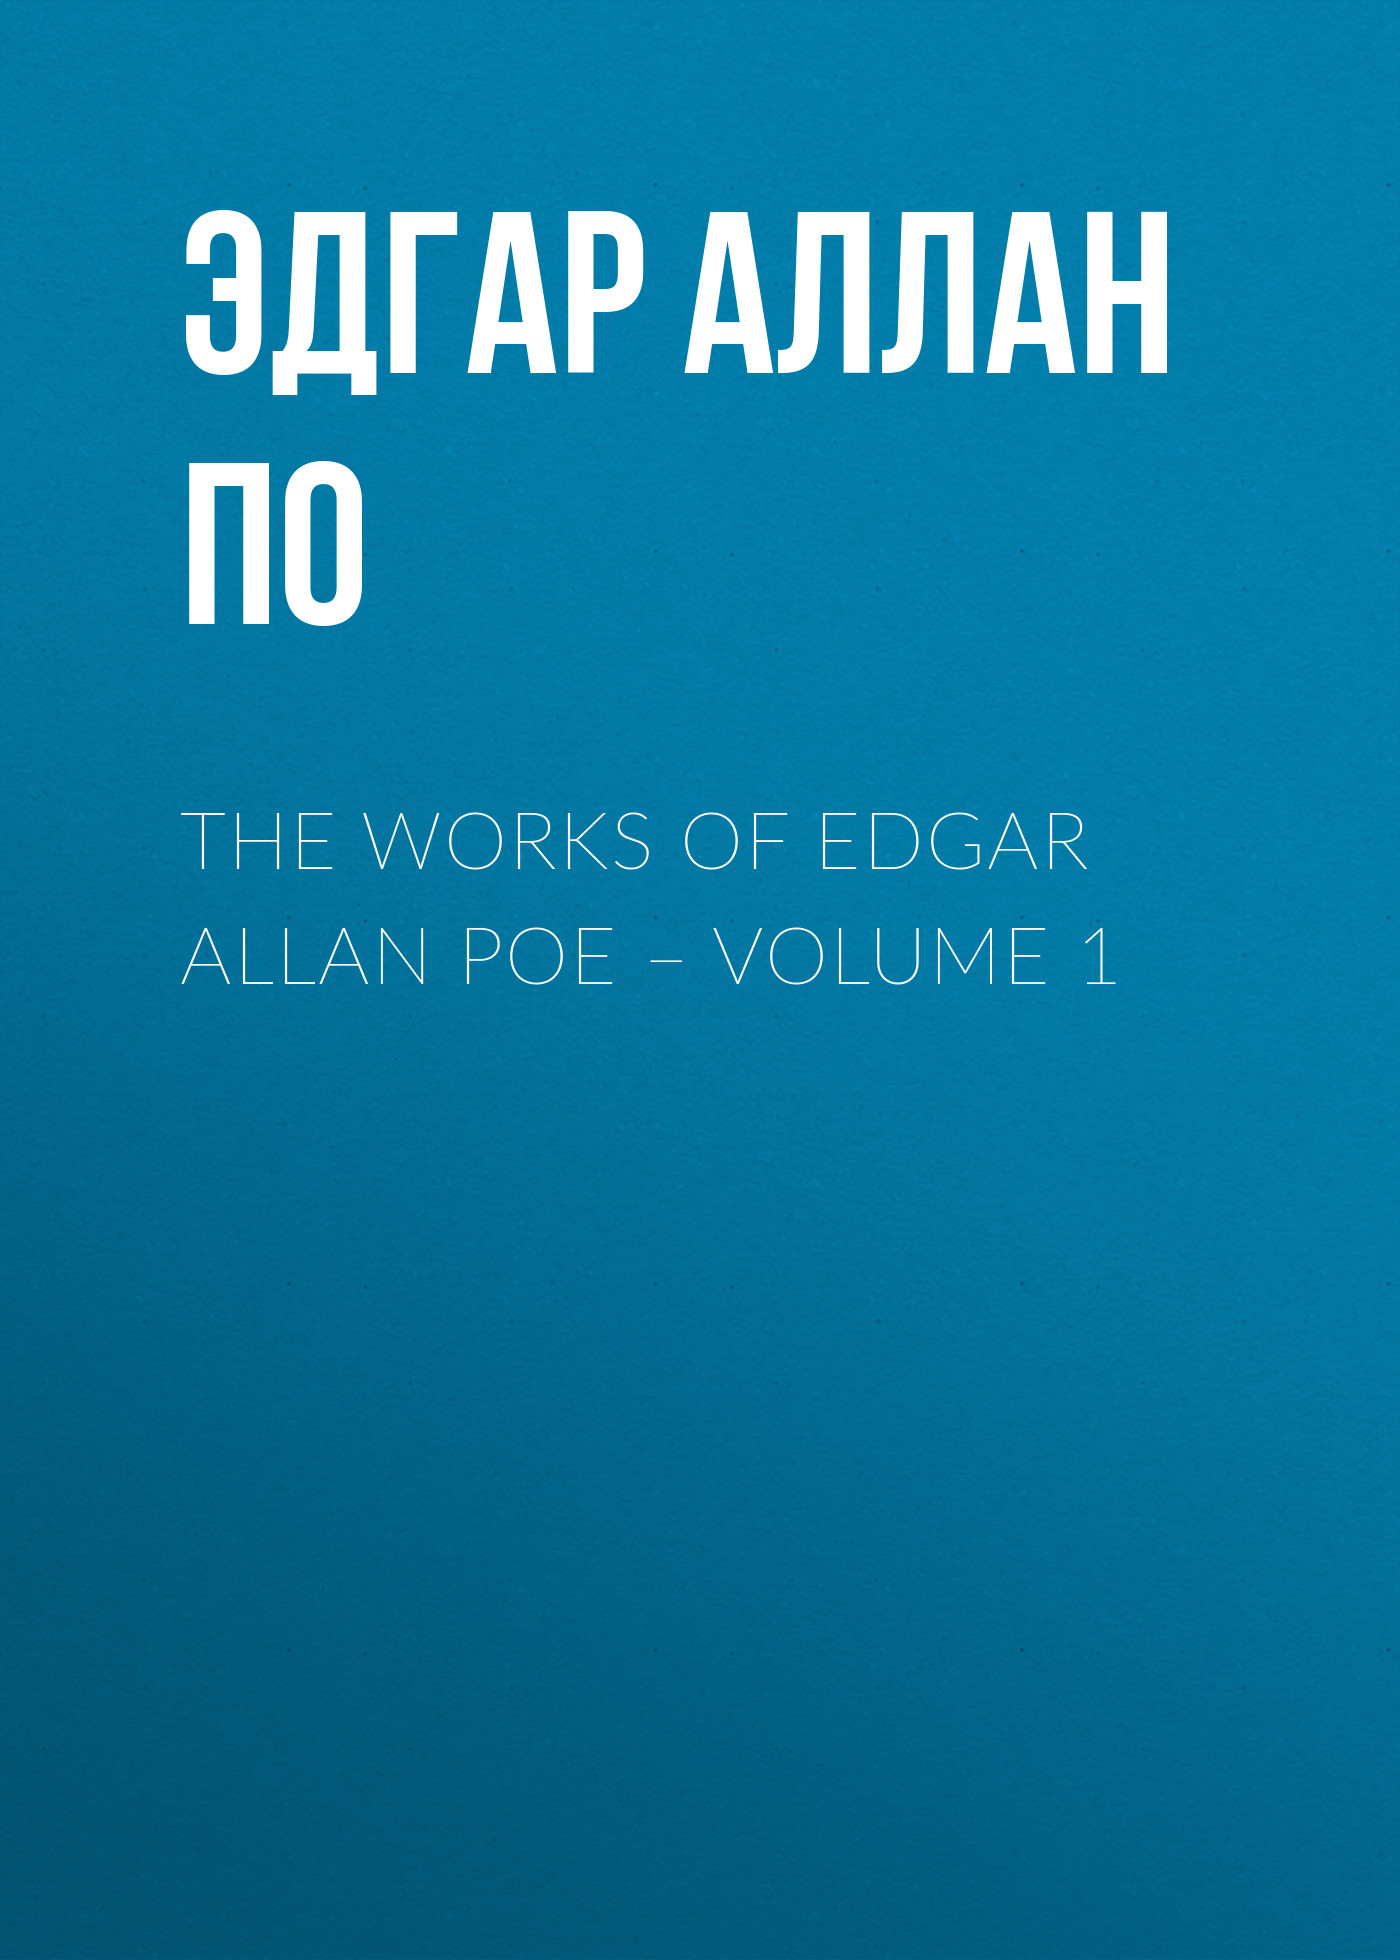 Эдгар Аллан По The Works of Edgar Allan Poe – Volume 1 эдгар аллан по the fall of the house of usher